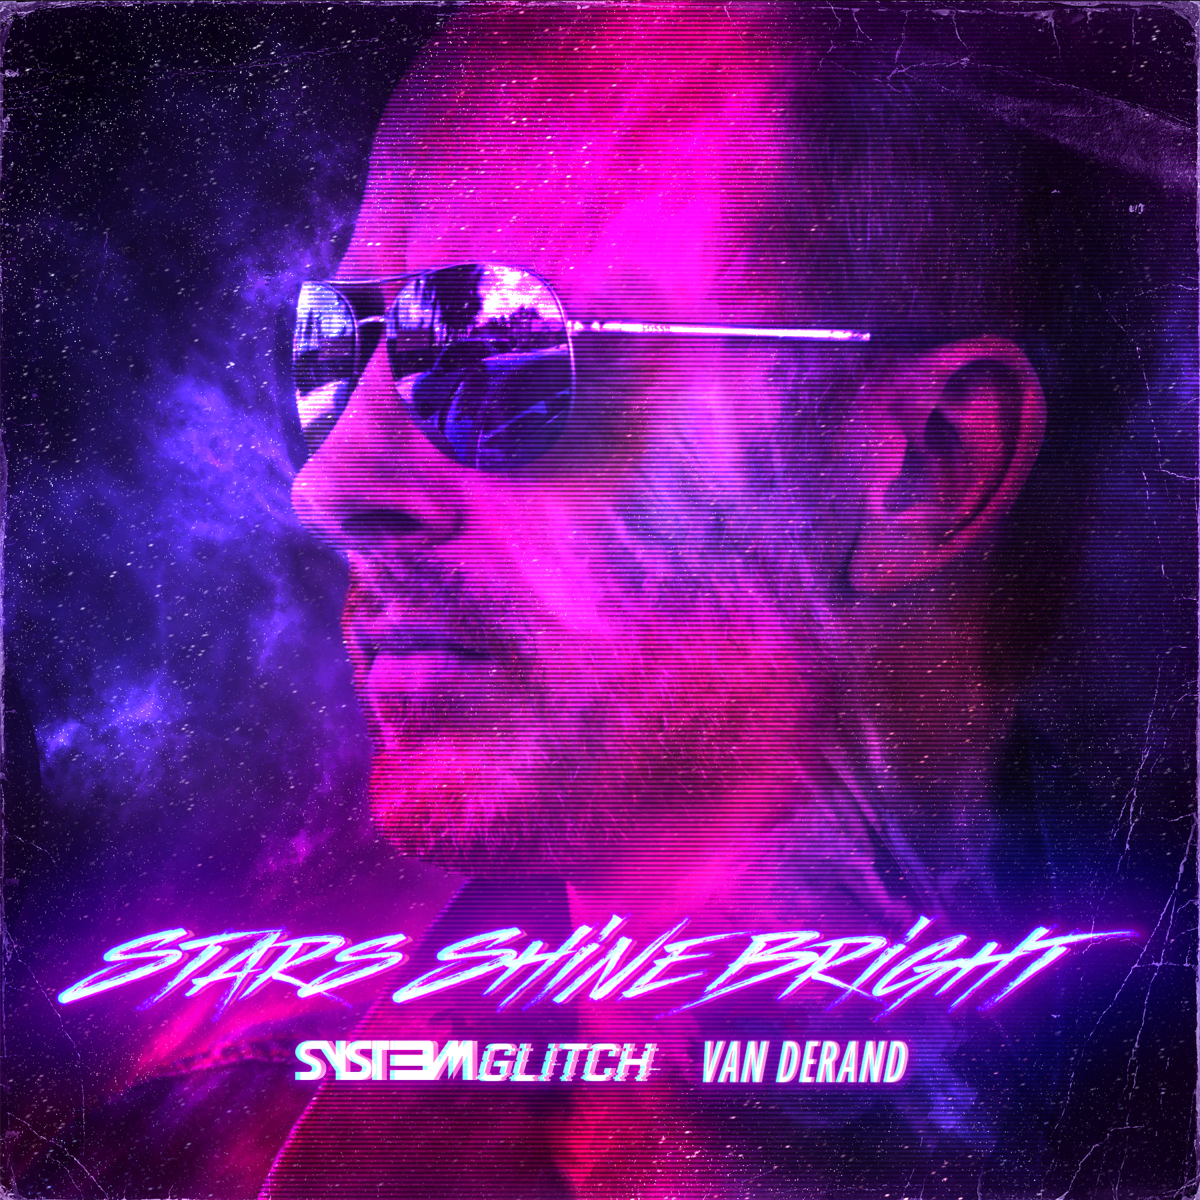 synth-single-review-stars-shine-bright-by-syst3m-glitch